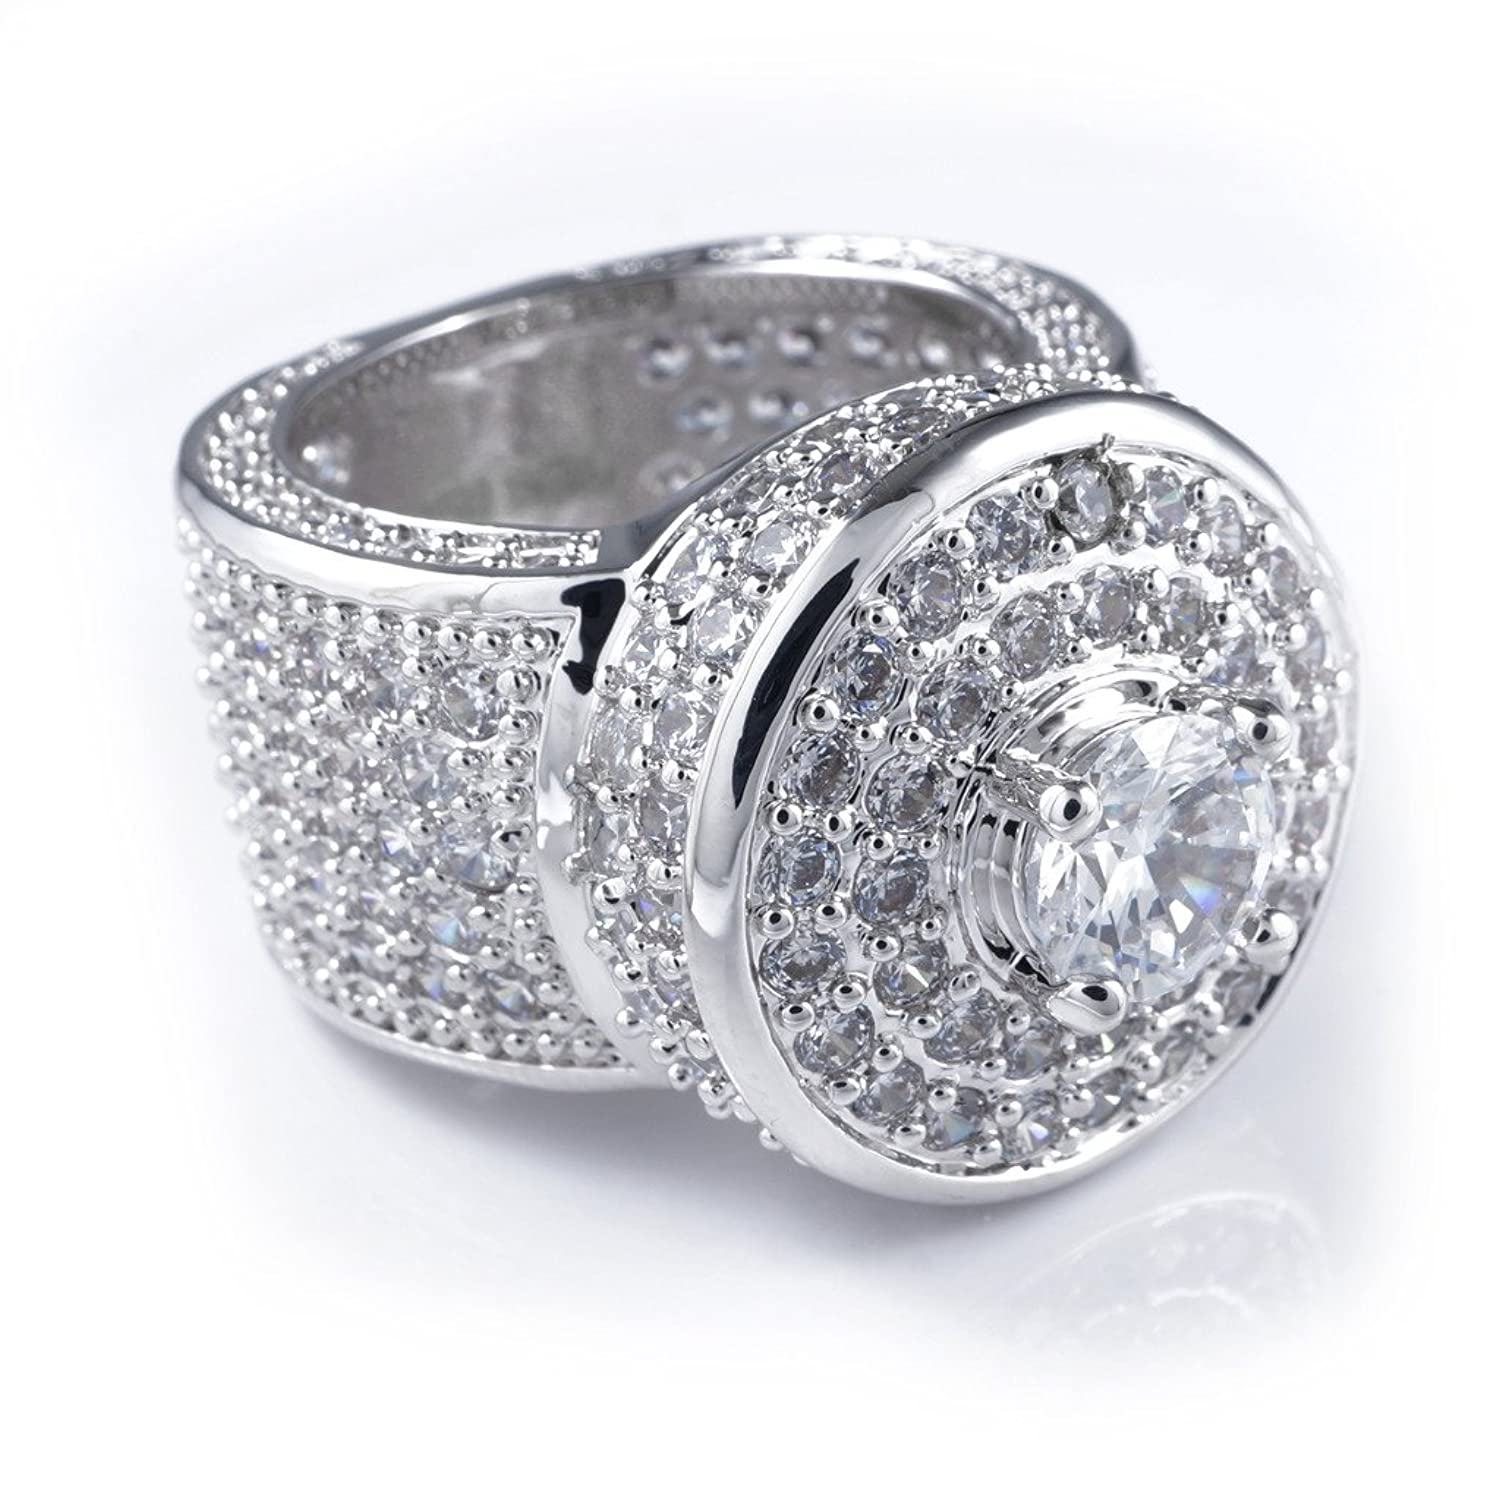 ad5c8d4b7edf2 18k White Gold Cluster CZ Iced Out Pinky Ring for Men - Hip Hop ...